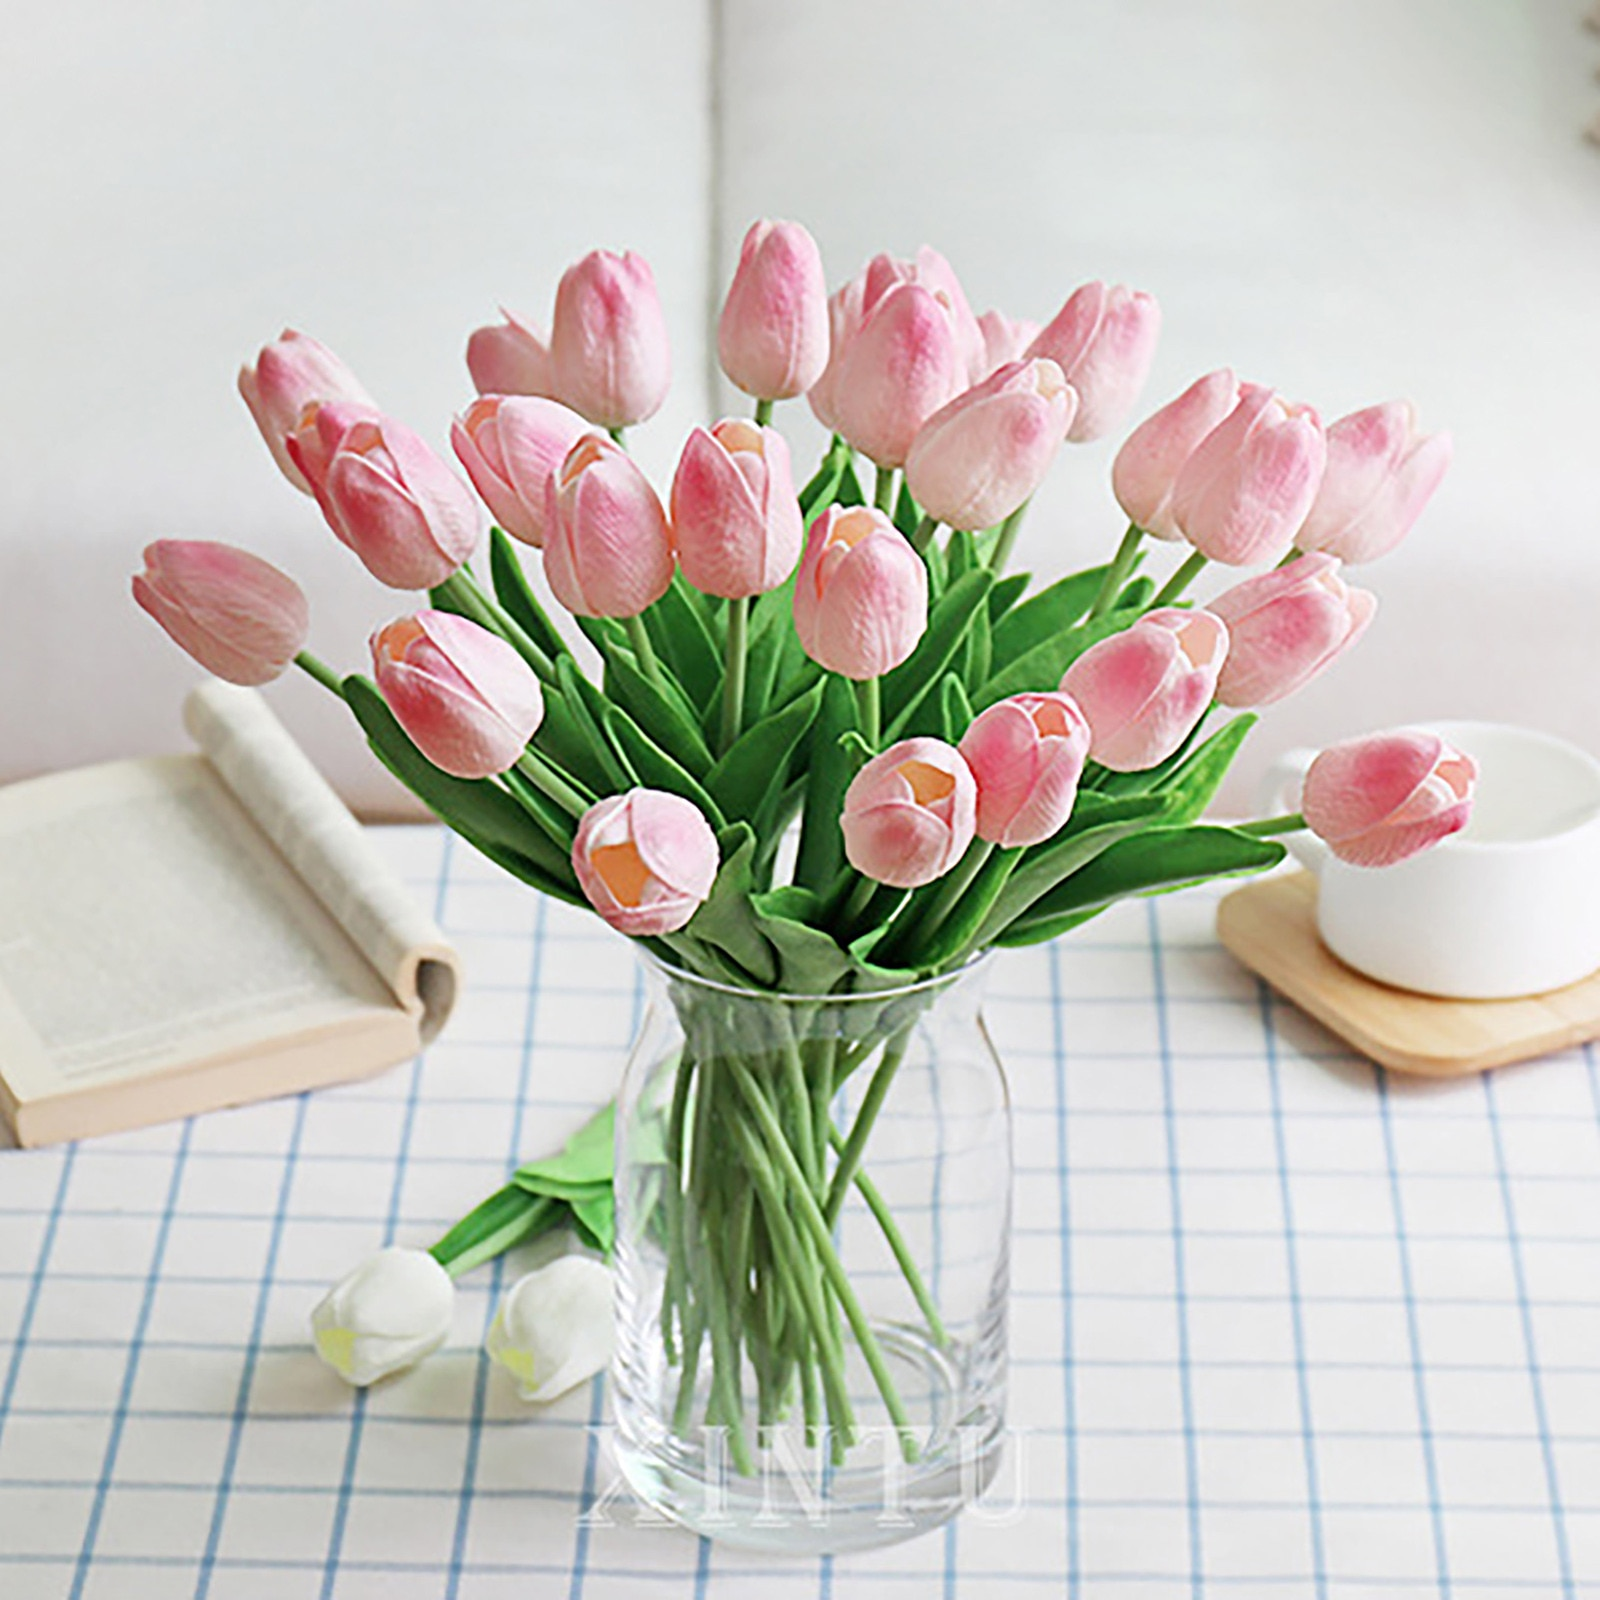 10Pcs/bunch Real touch soft silicone Artificial tulips Flower for home wedding decoration Fake bridal hand flowers flores tulip